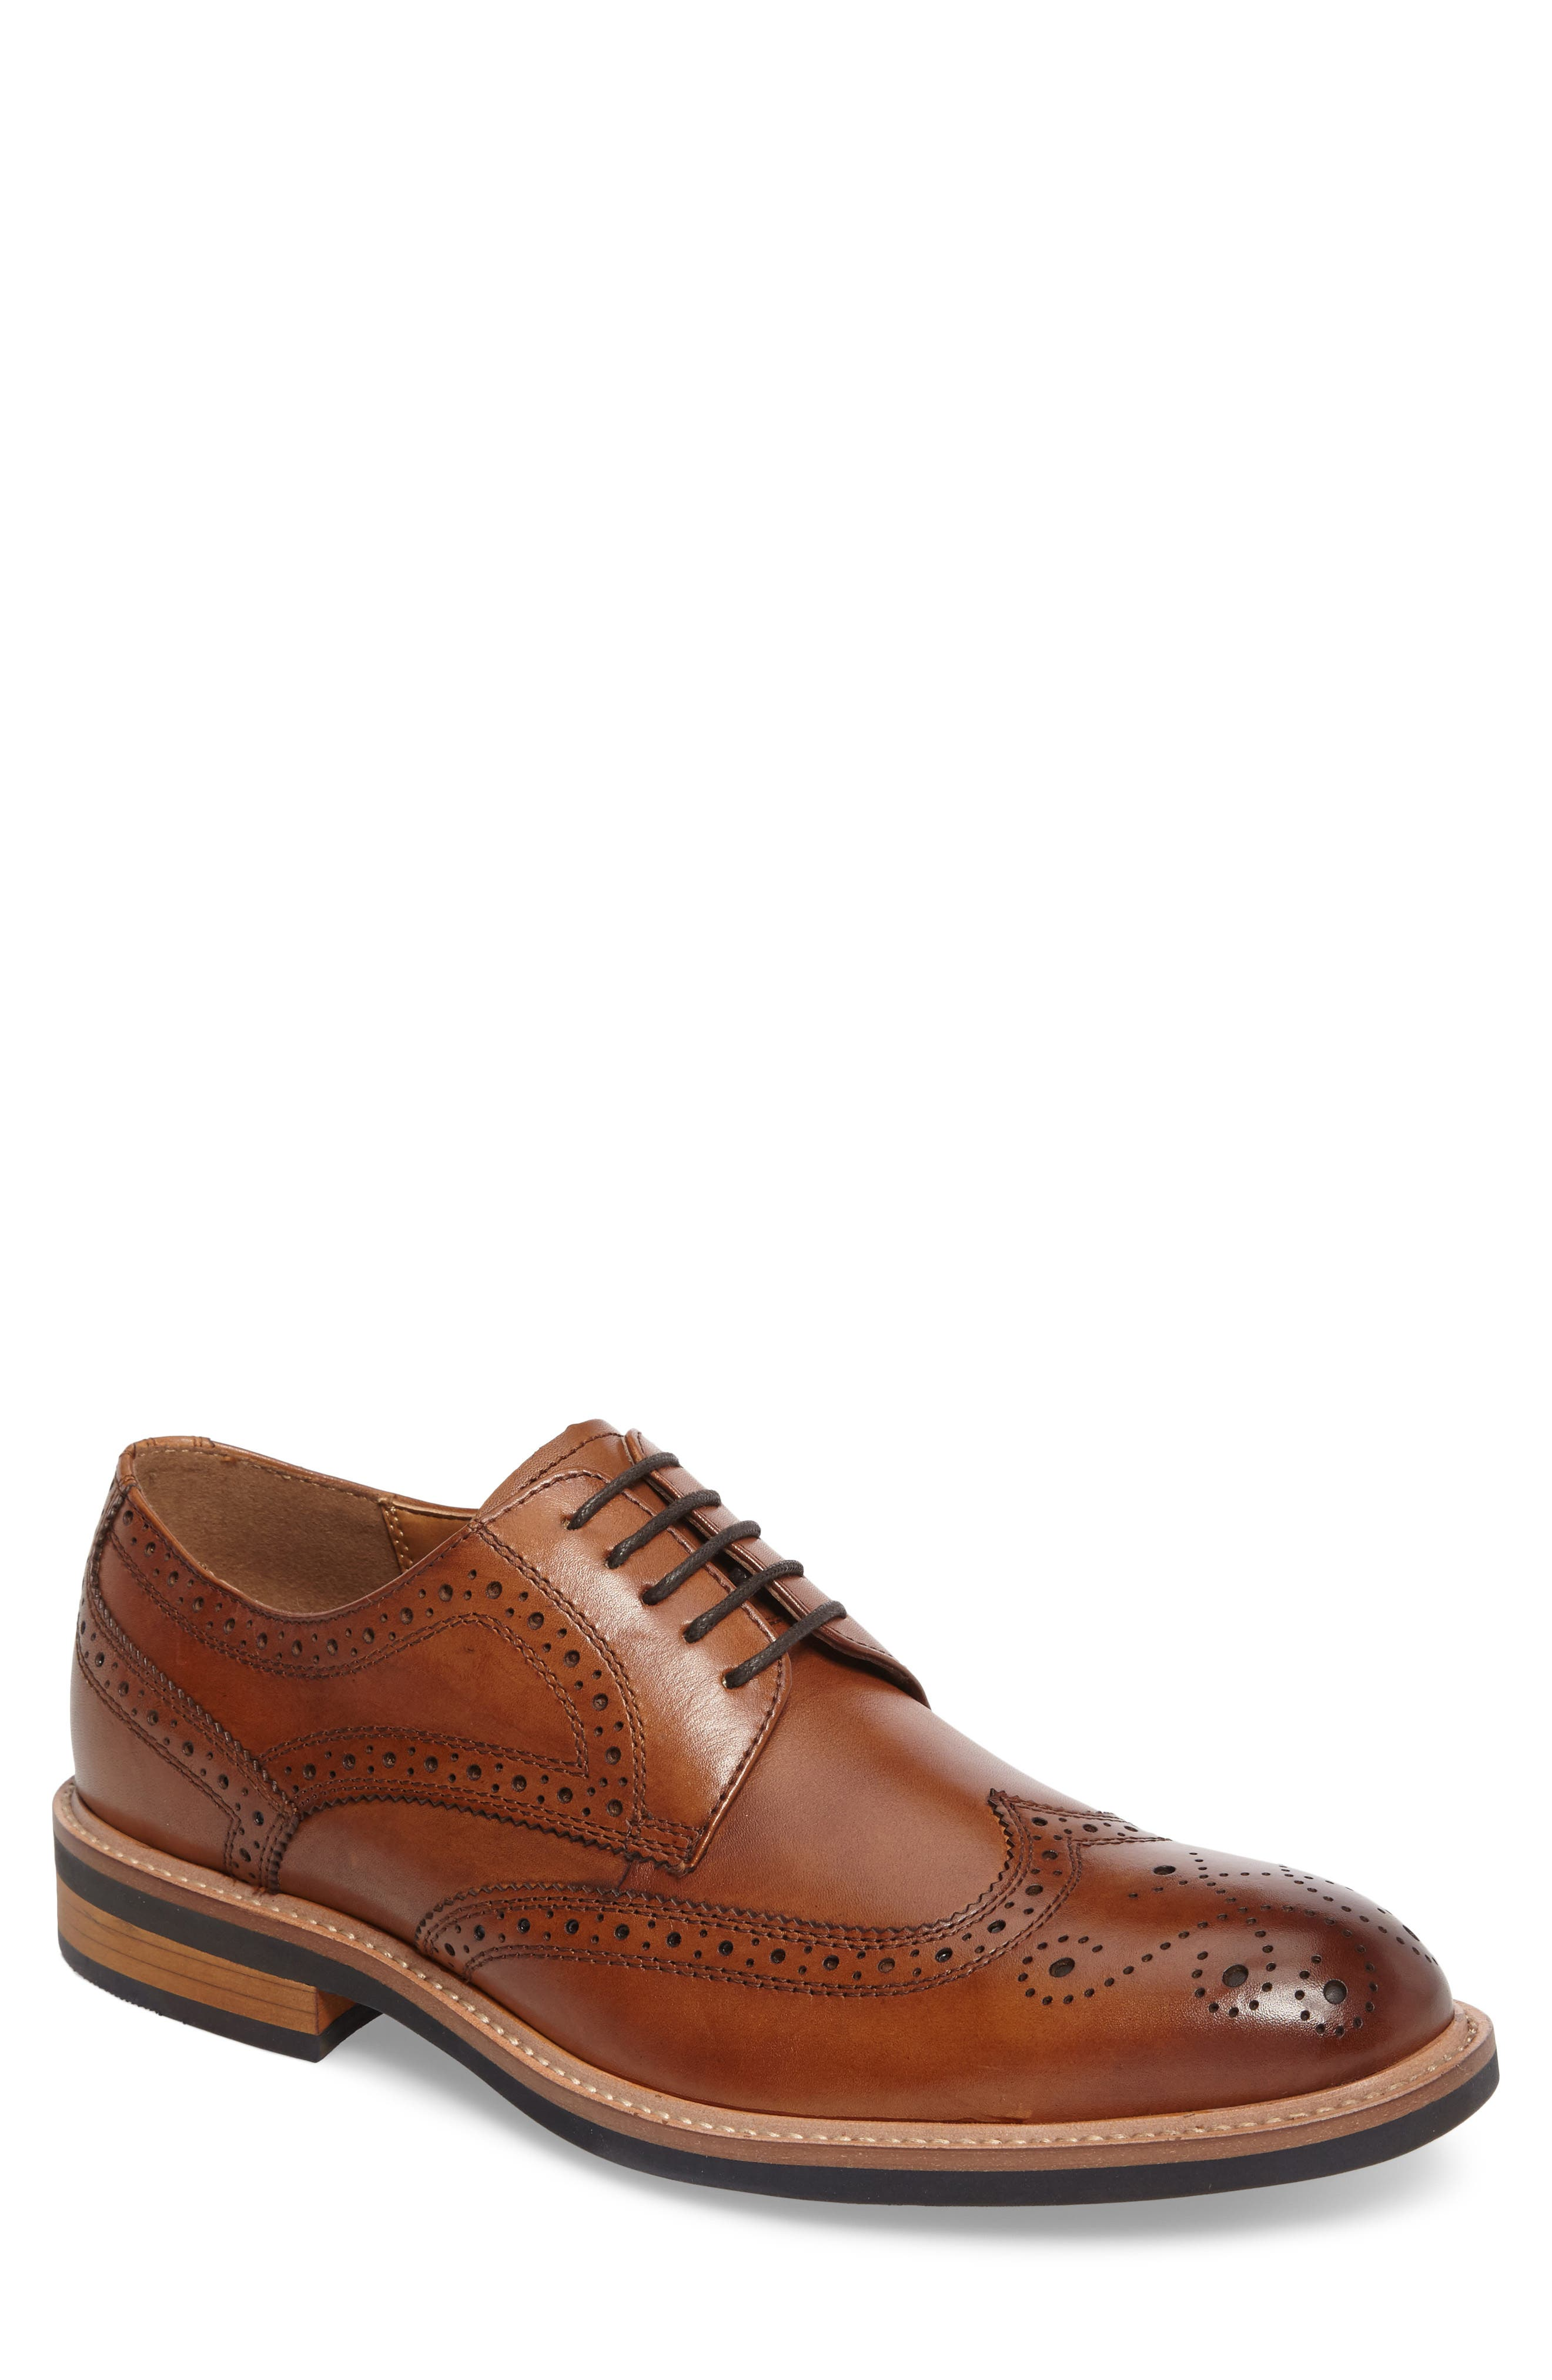 Kenneth Cole Reaction Wingtip,                         Main,                         color,